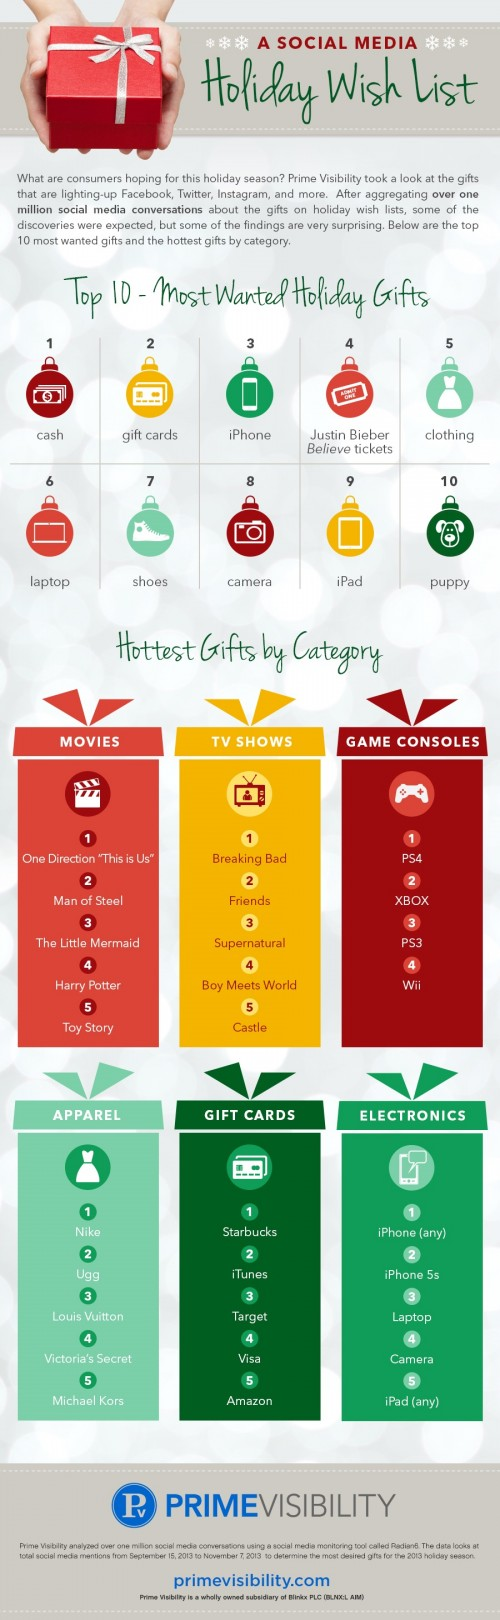 A-Social-Media-Holiday-Wish-List-infographic-500x1620